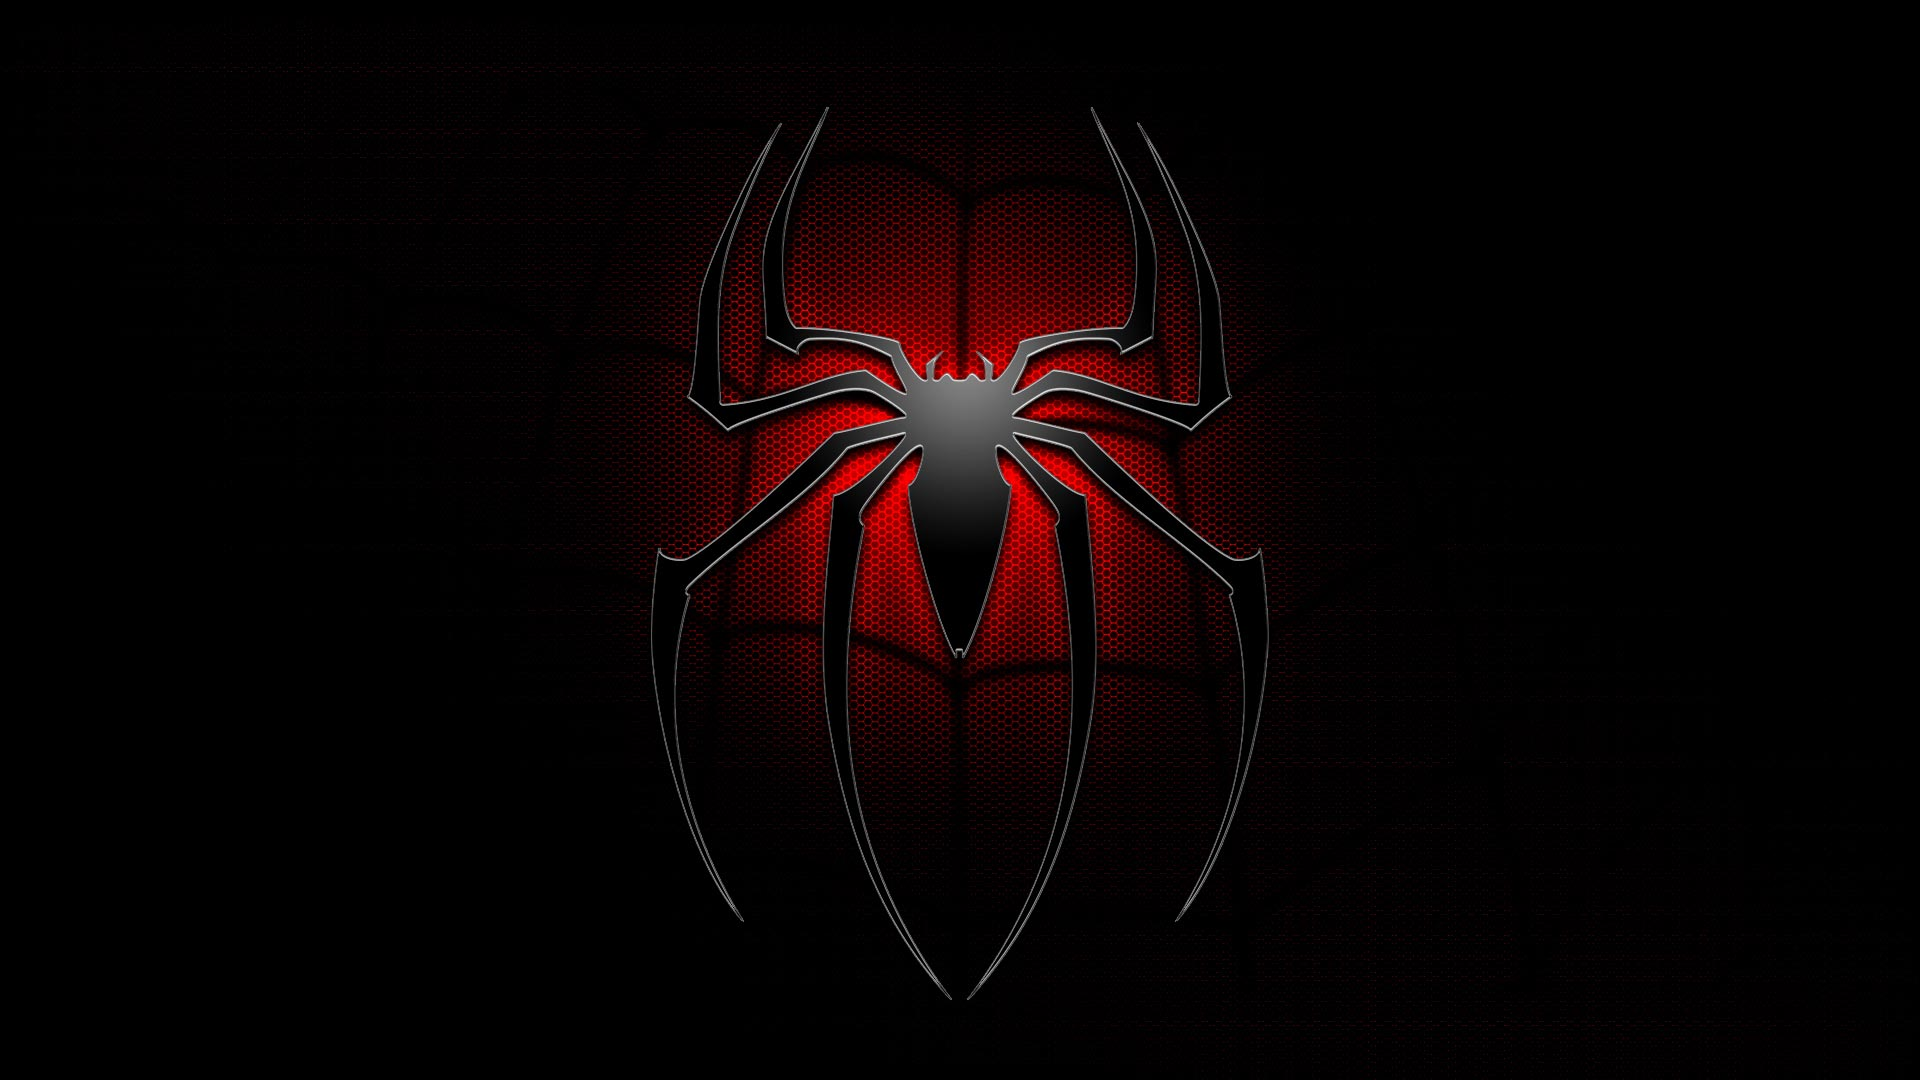 Amazing Spiderman 2 beautiful wallpapers hd spider man 2 backgrounds 580x350 THE AMAZING SPIDER MAN 2